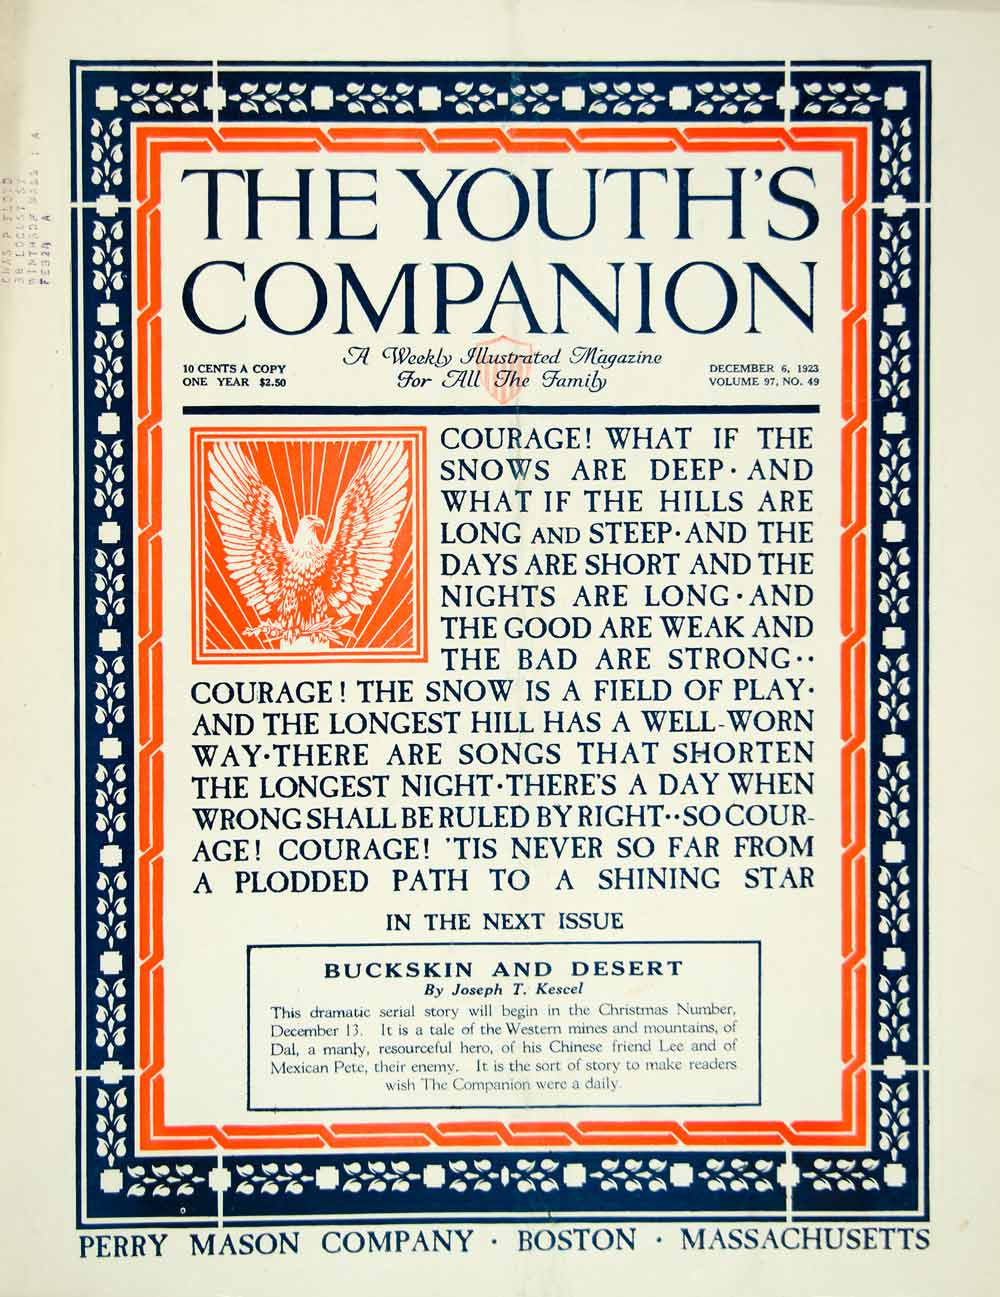 1923 Cover Youths Companion Art Buckskin Desert Joseph T Kescel Border YYC4